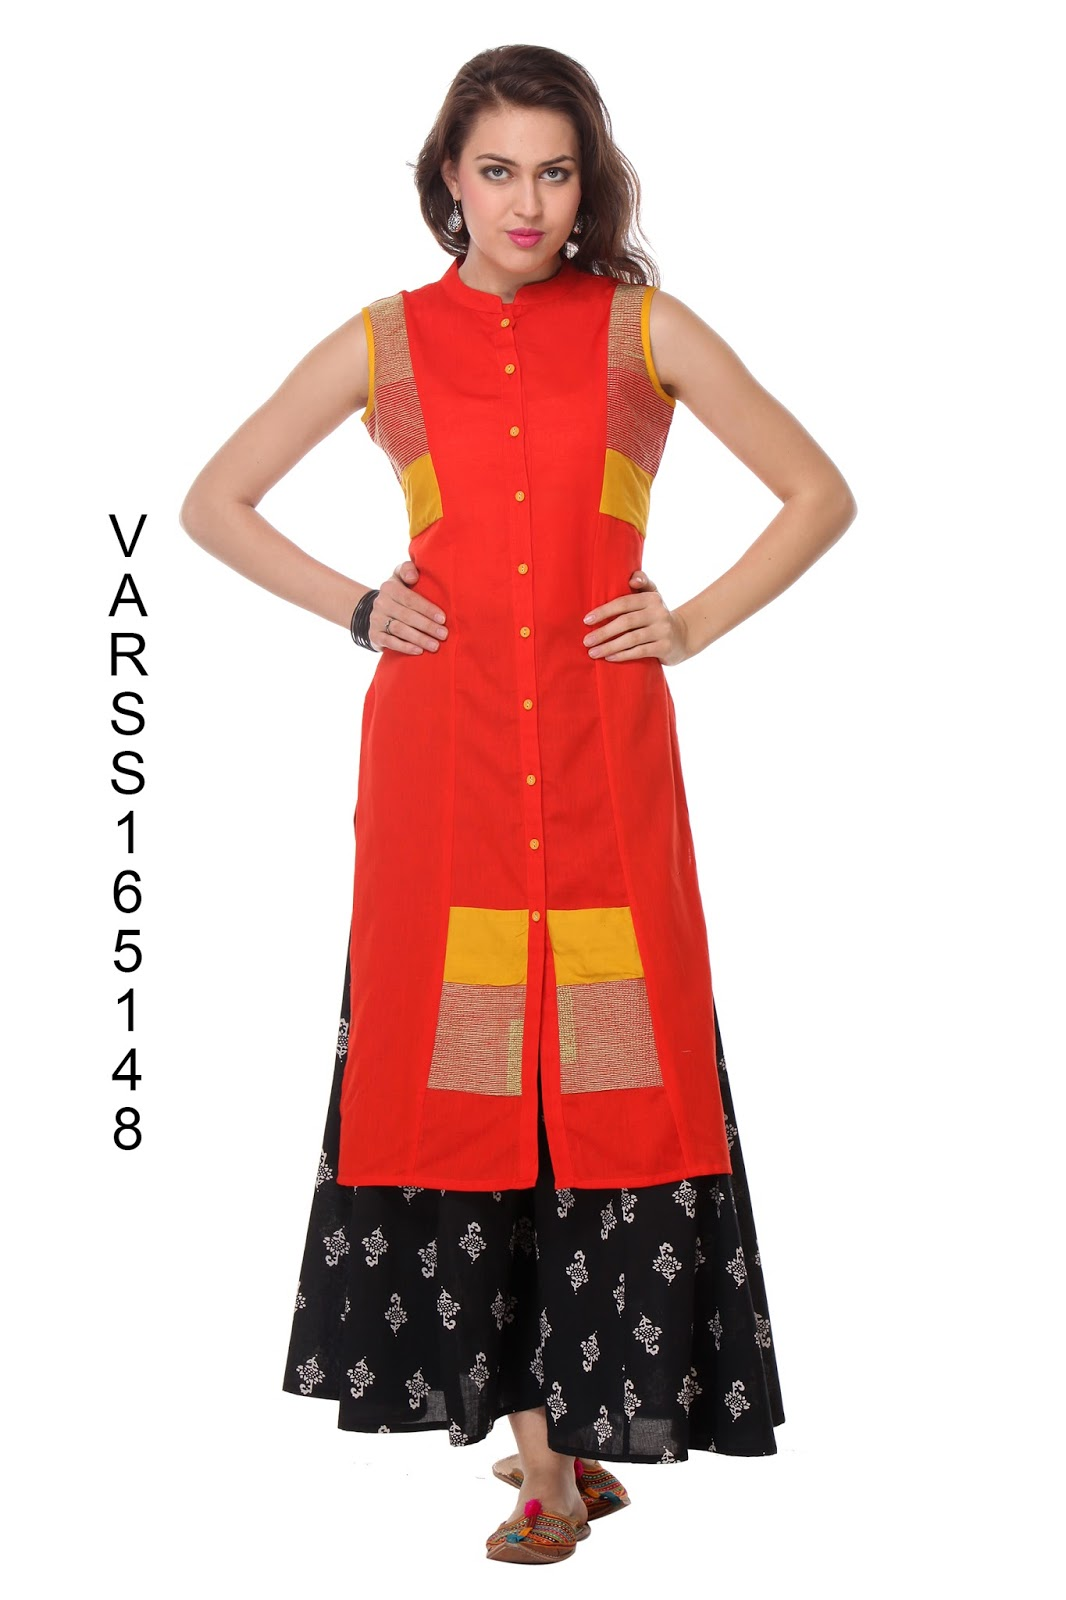 Rayon 12 – Stylish And Designer Rayon With Printed Kurti